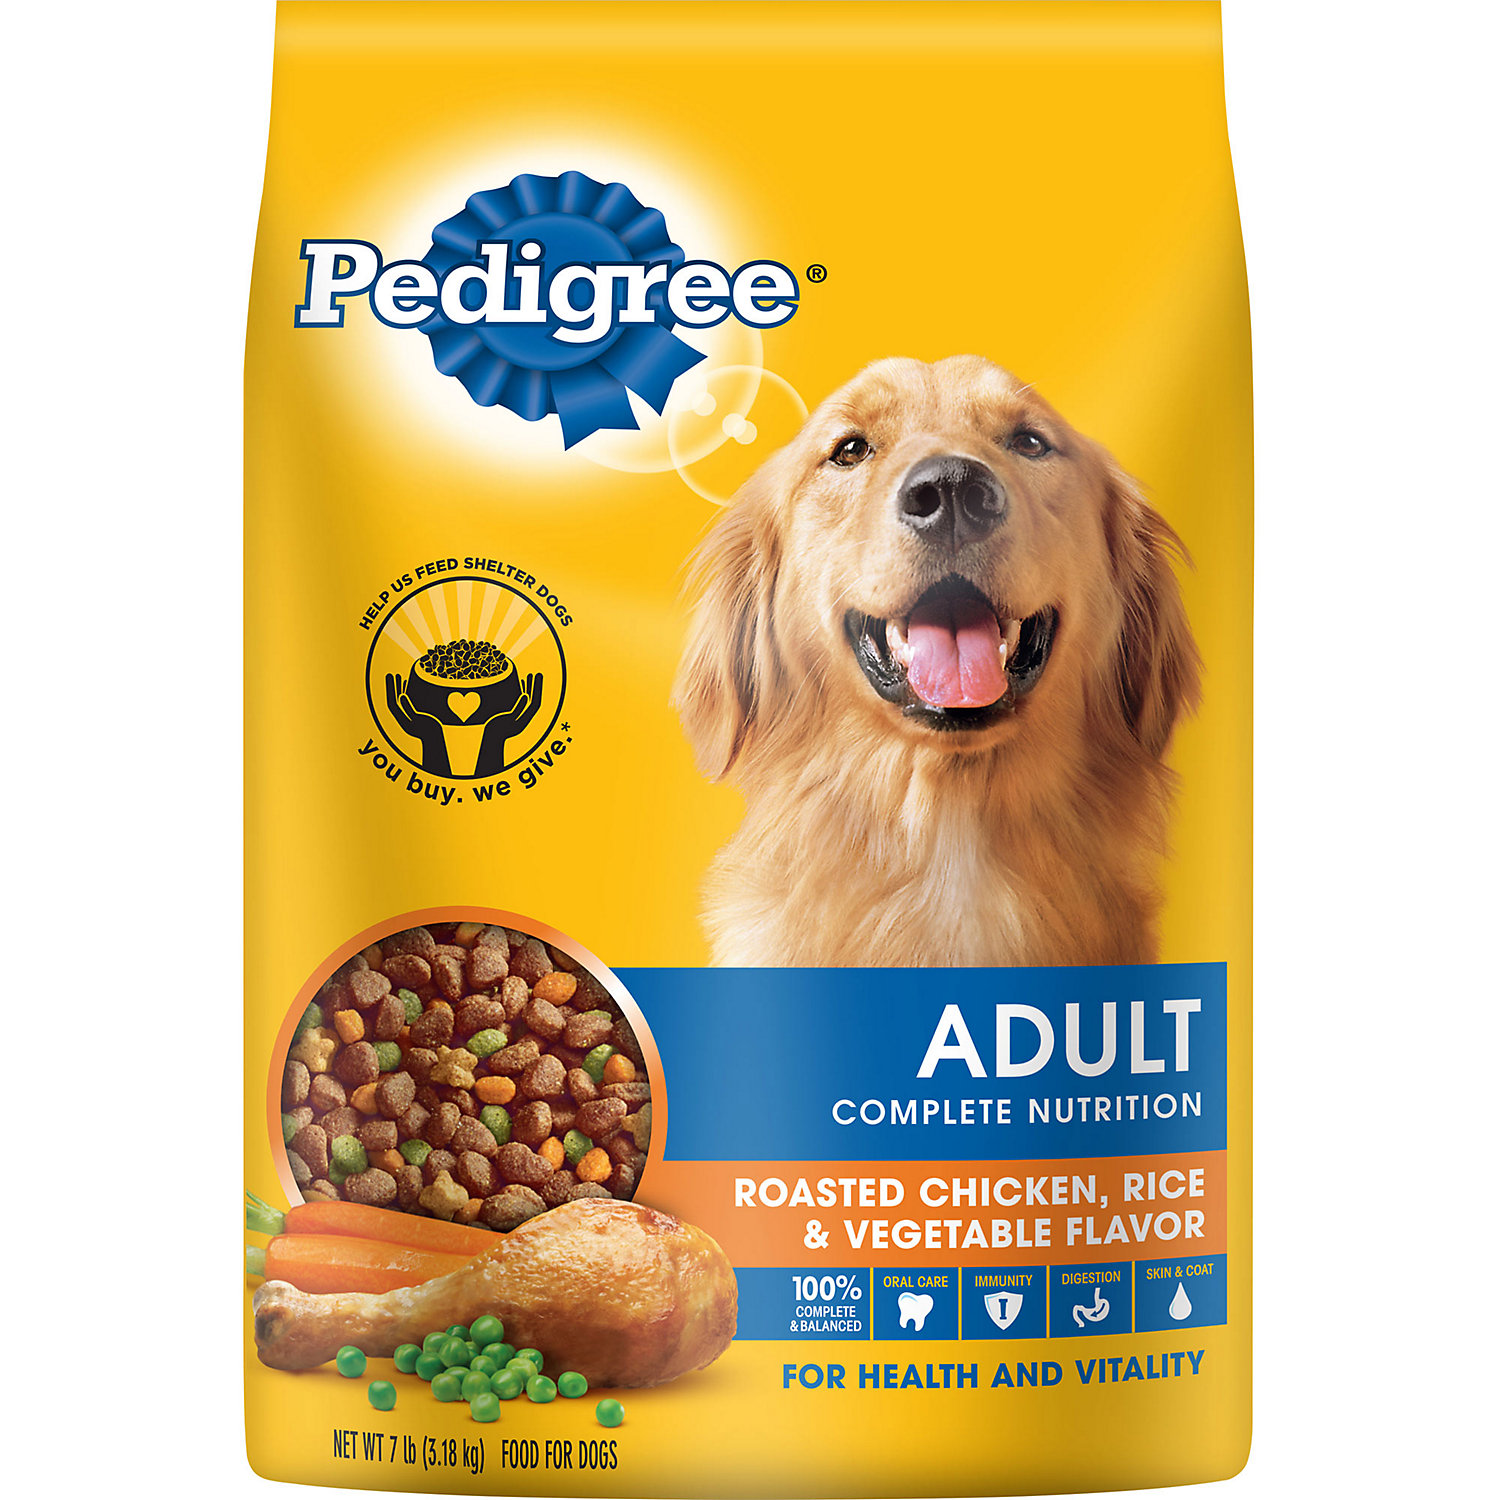 Purchase Dog Food Online